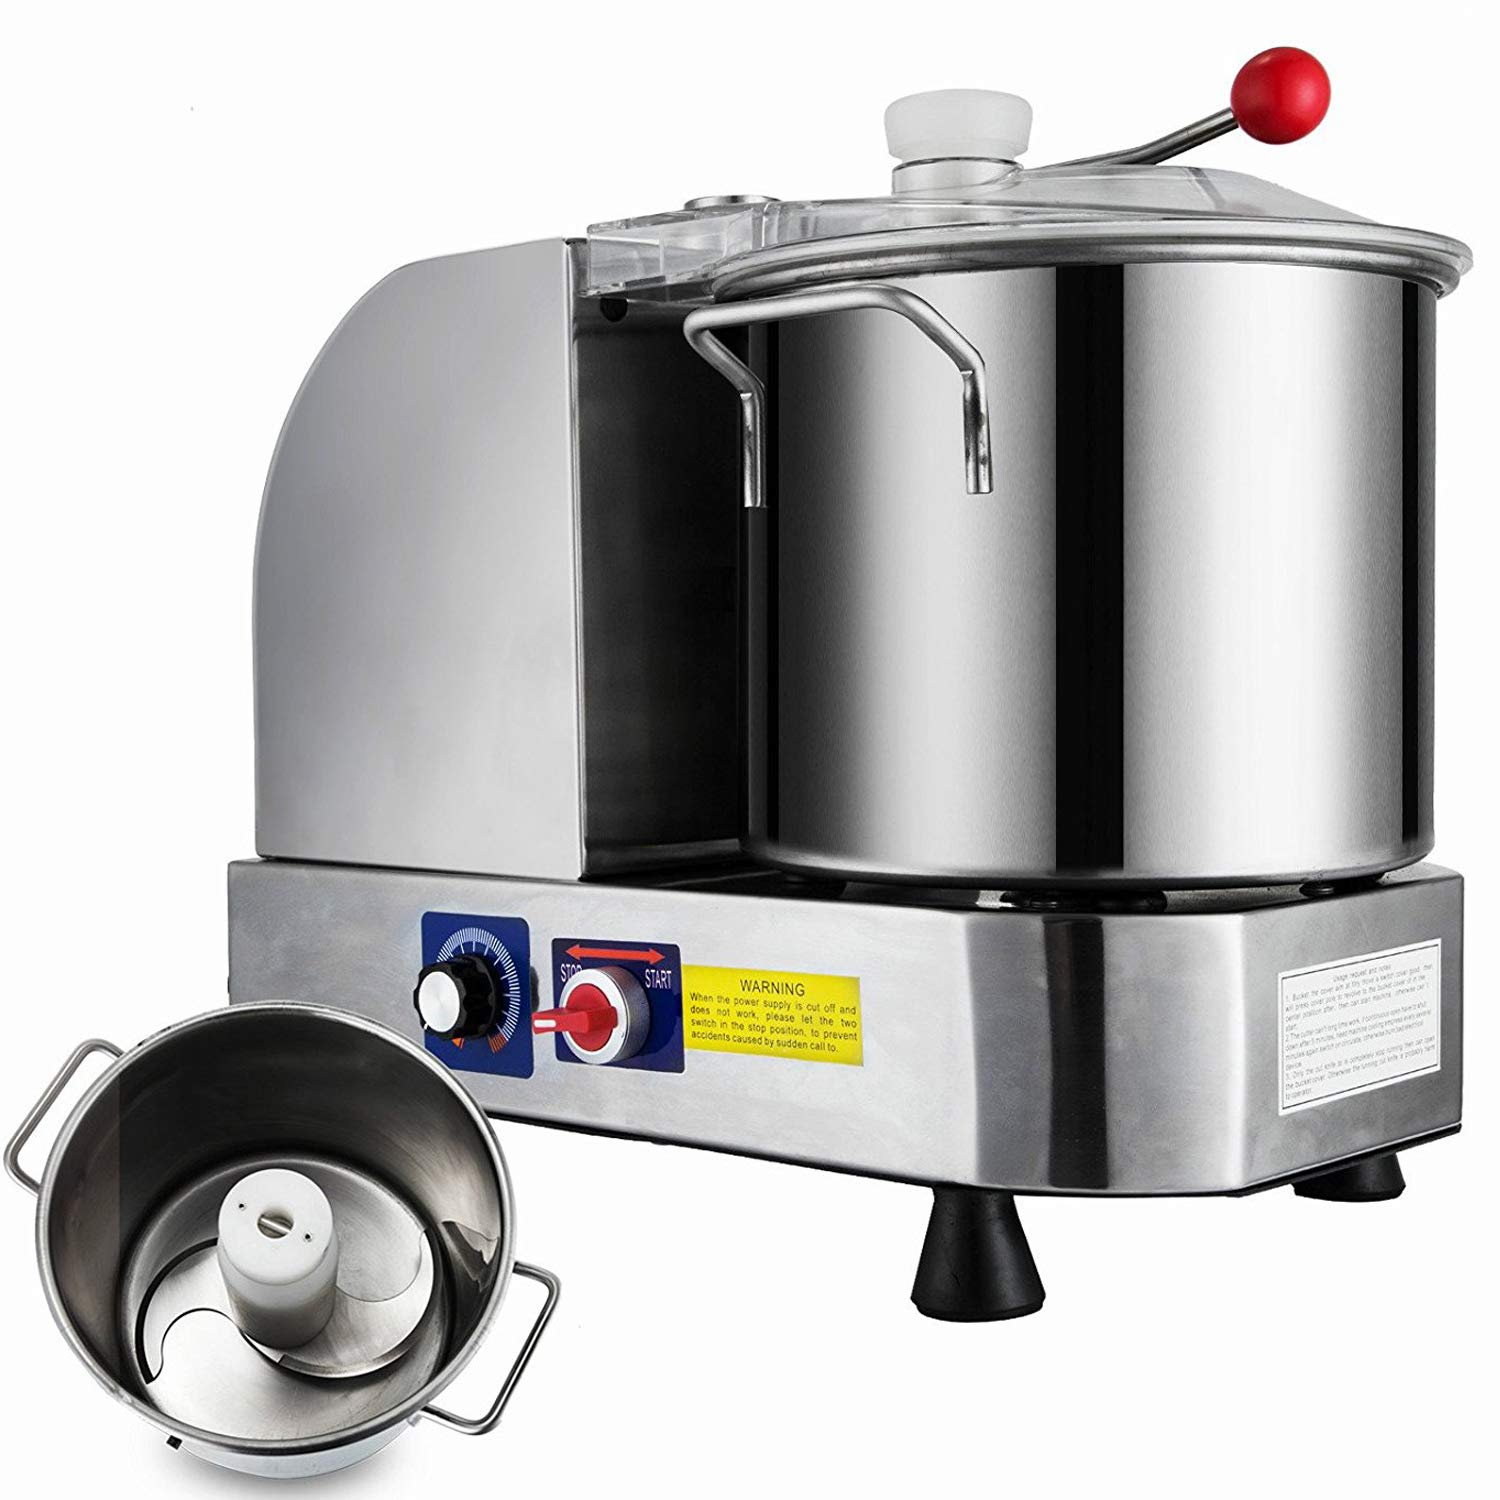 Happybuy Commercial Food Cutter 400W Dough Mixer Machine 850/2000 RPM for Meat Vegetables and Fruit, 6L